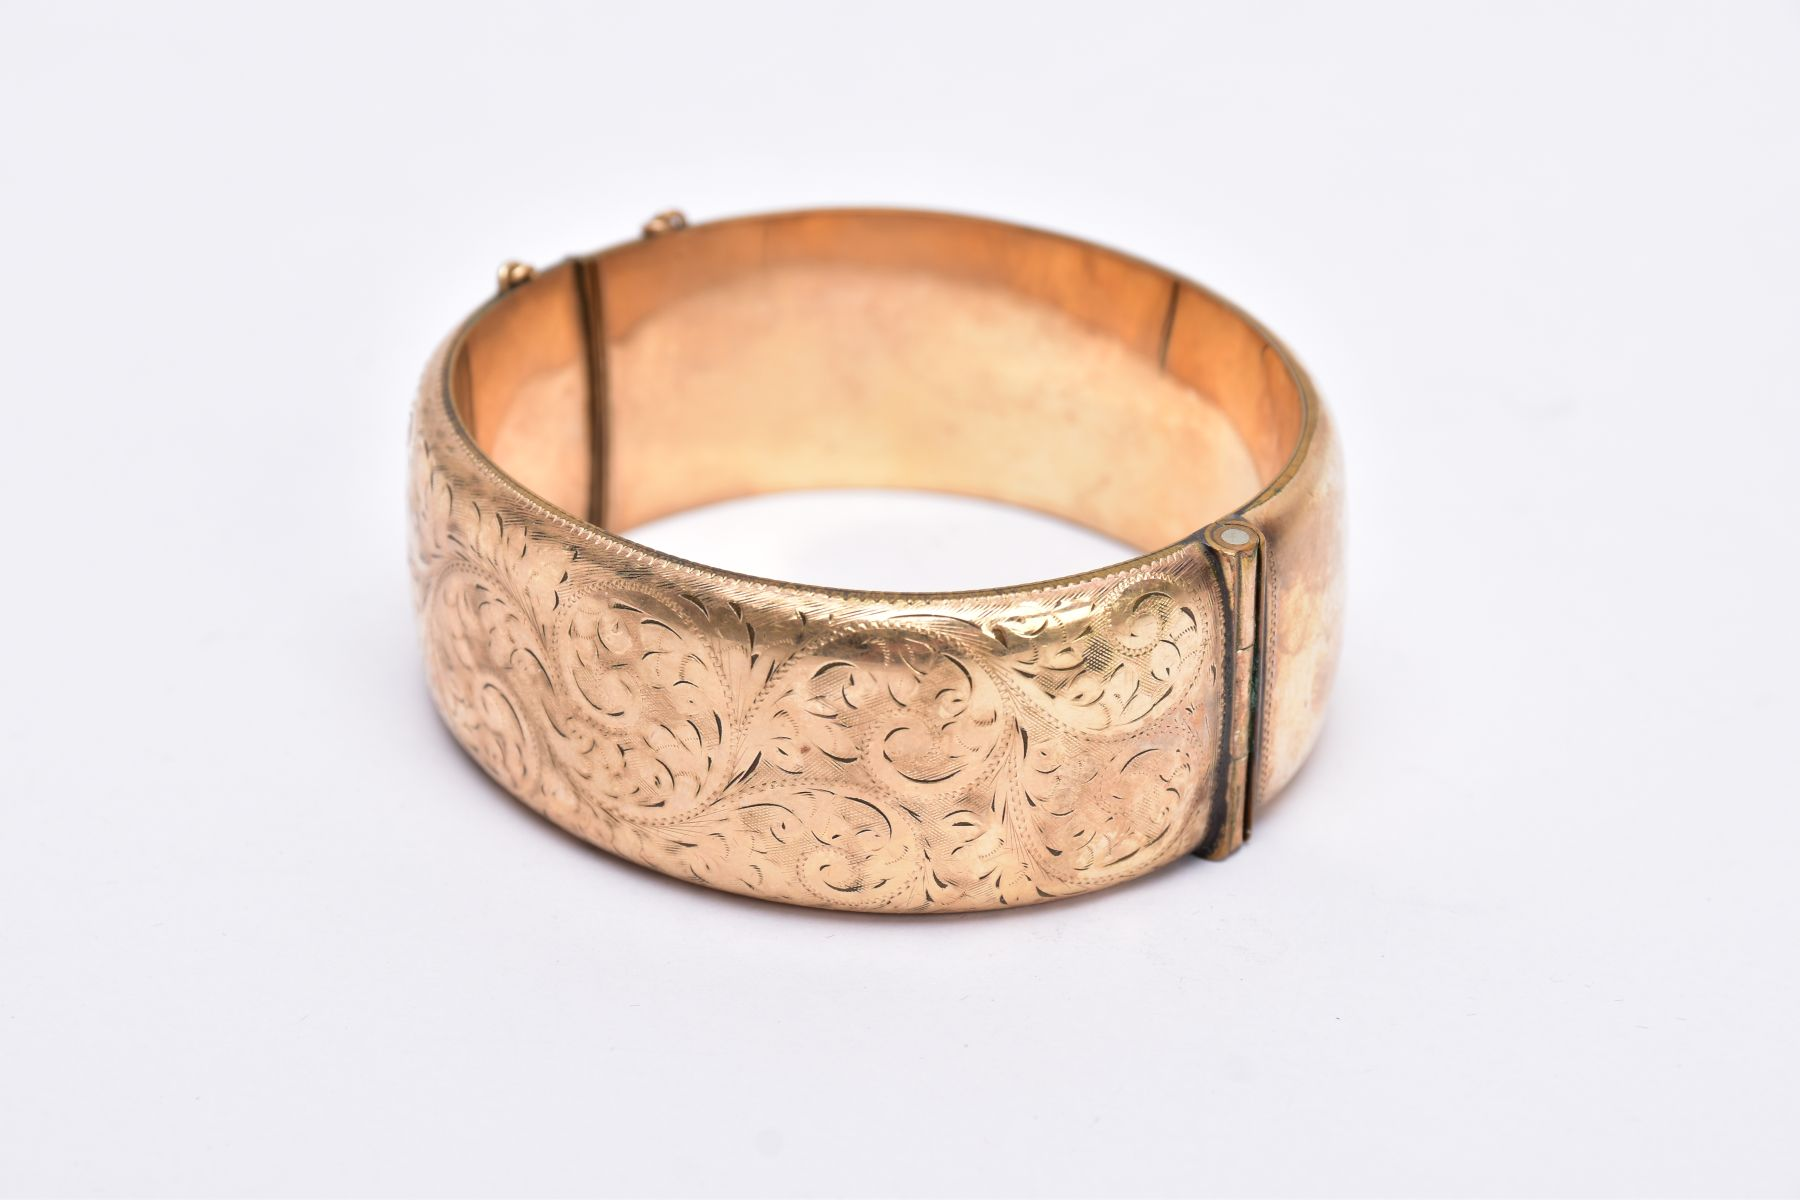 A ROLLED GOLD WIDE BANGLE, hinged bangle with a half engraved foliate design, push pin clasp, fitted - Image 2 of 3